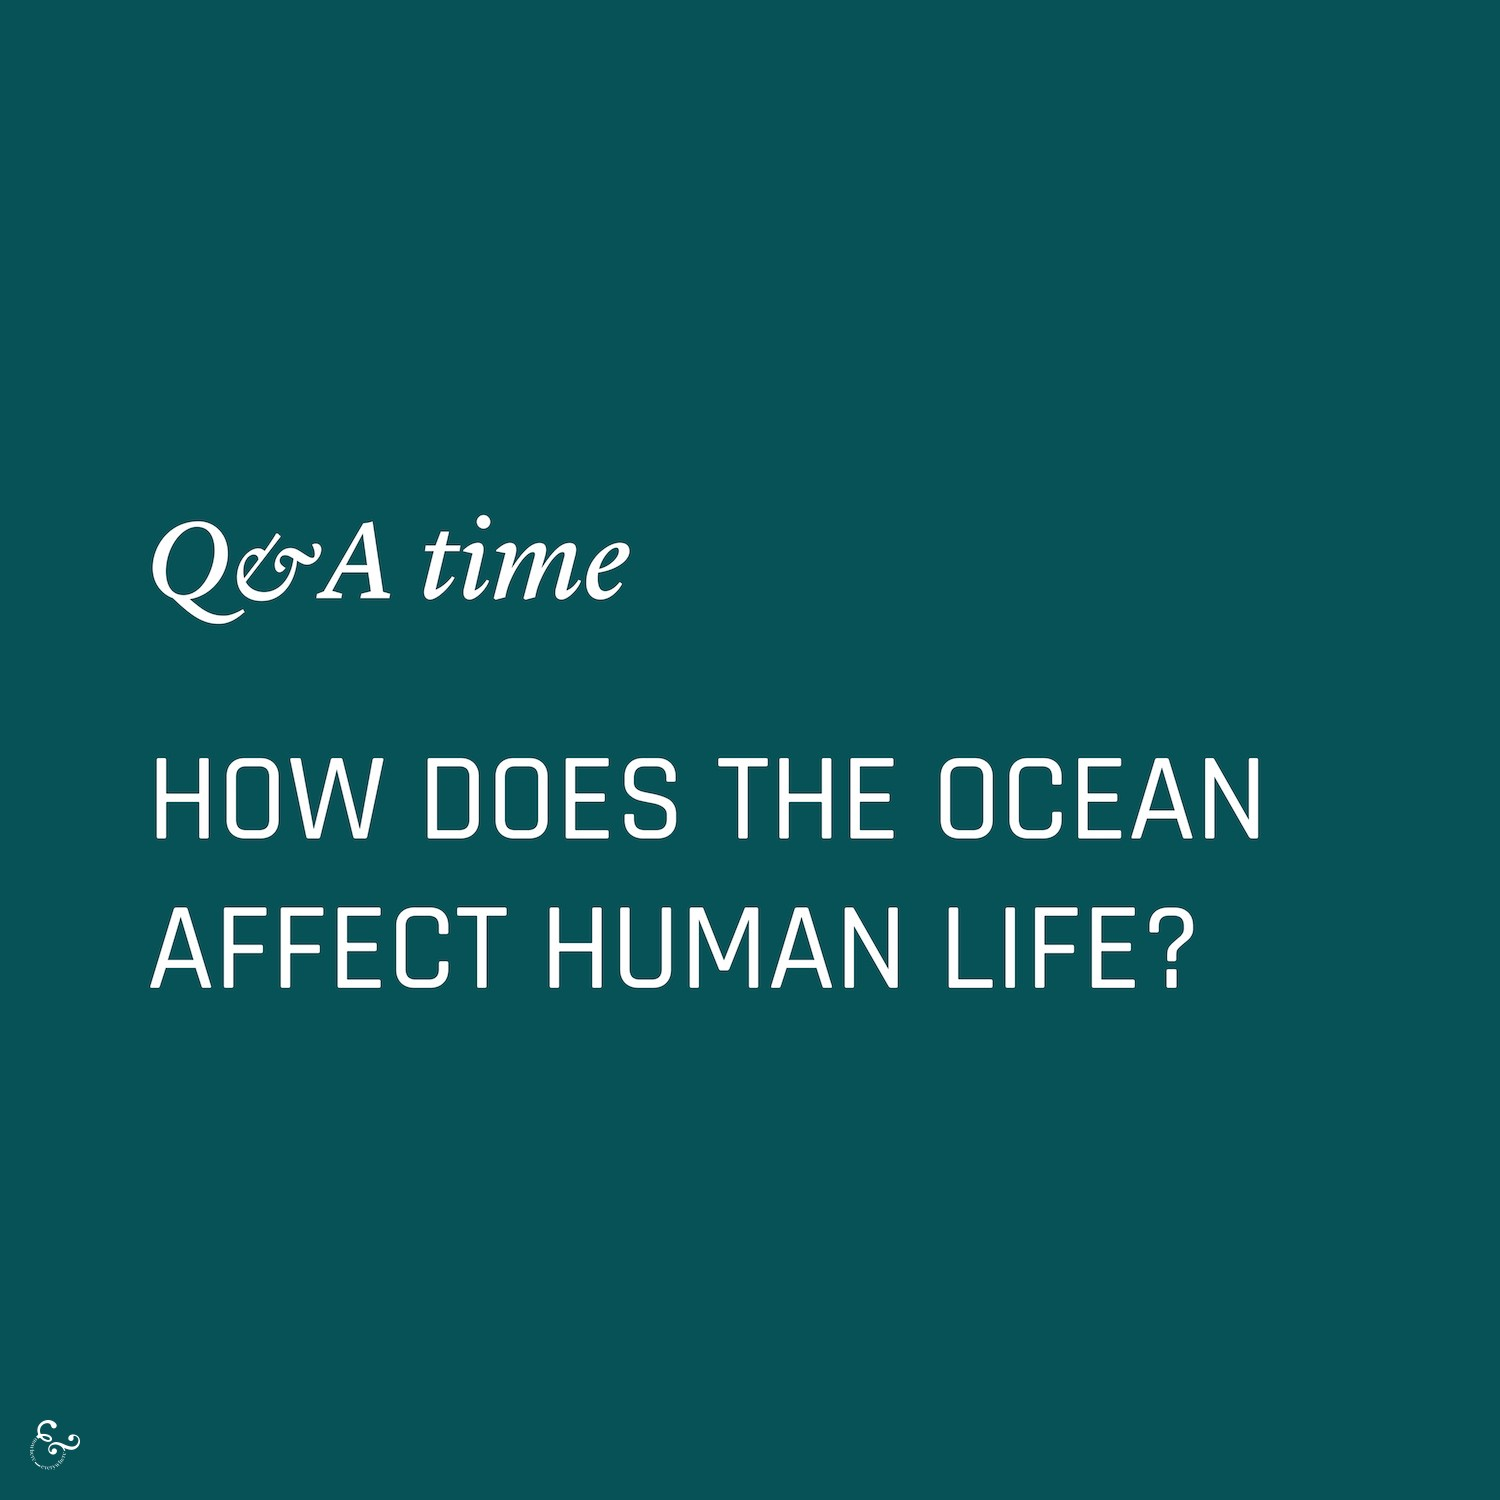 How does the ocean affect human life? Environment Environmental Questions FAQs Frequently Asked Questions Climate Change Plastics Oceans Animals Nowhere & Everywhere